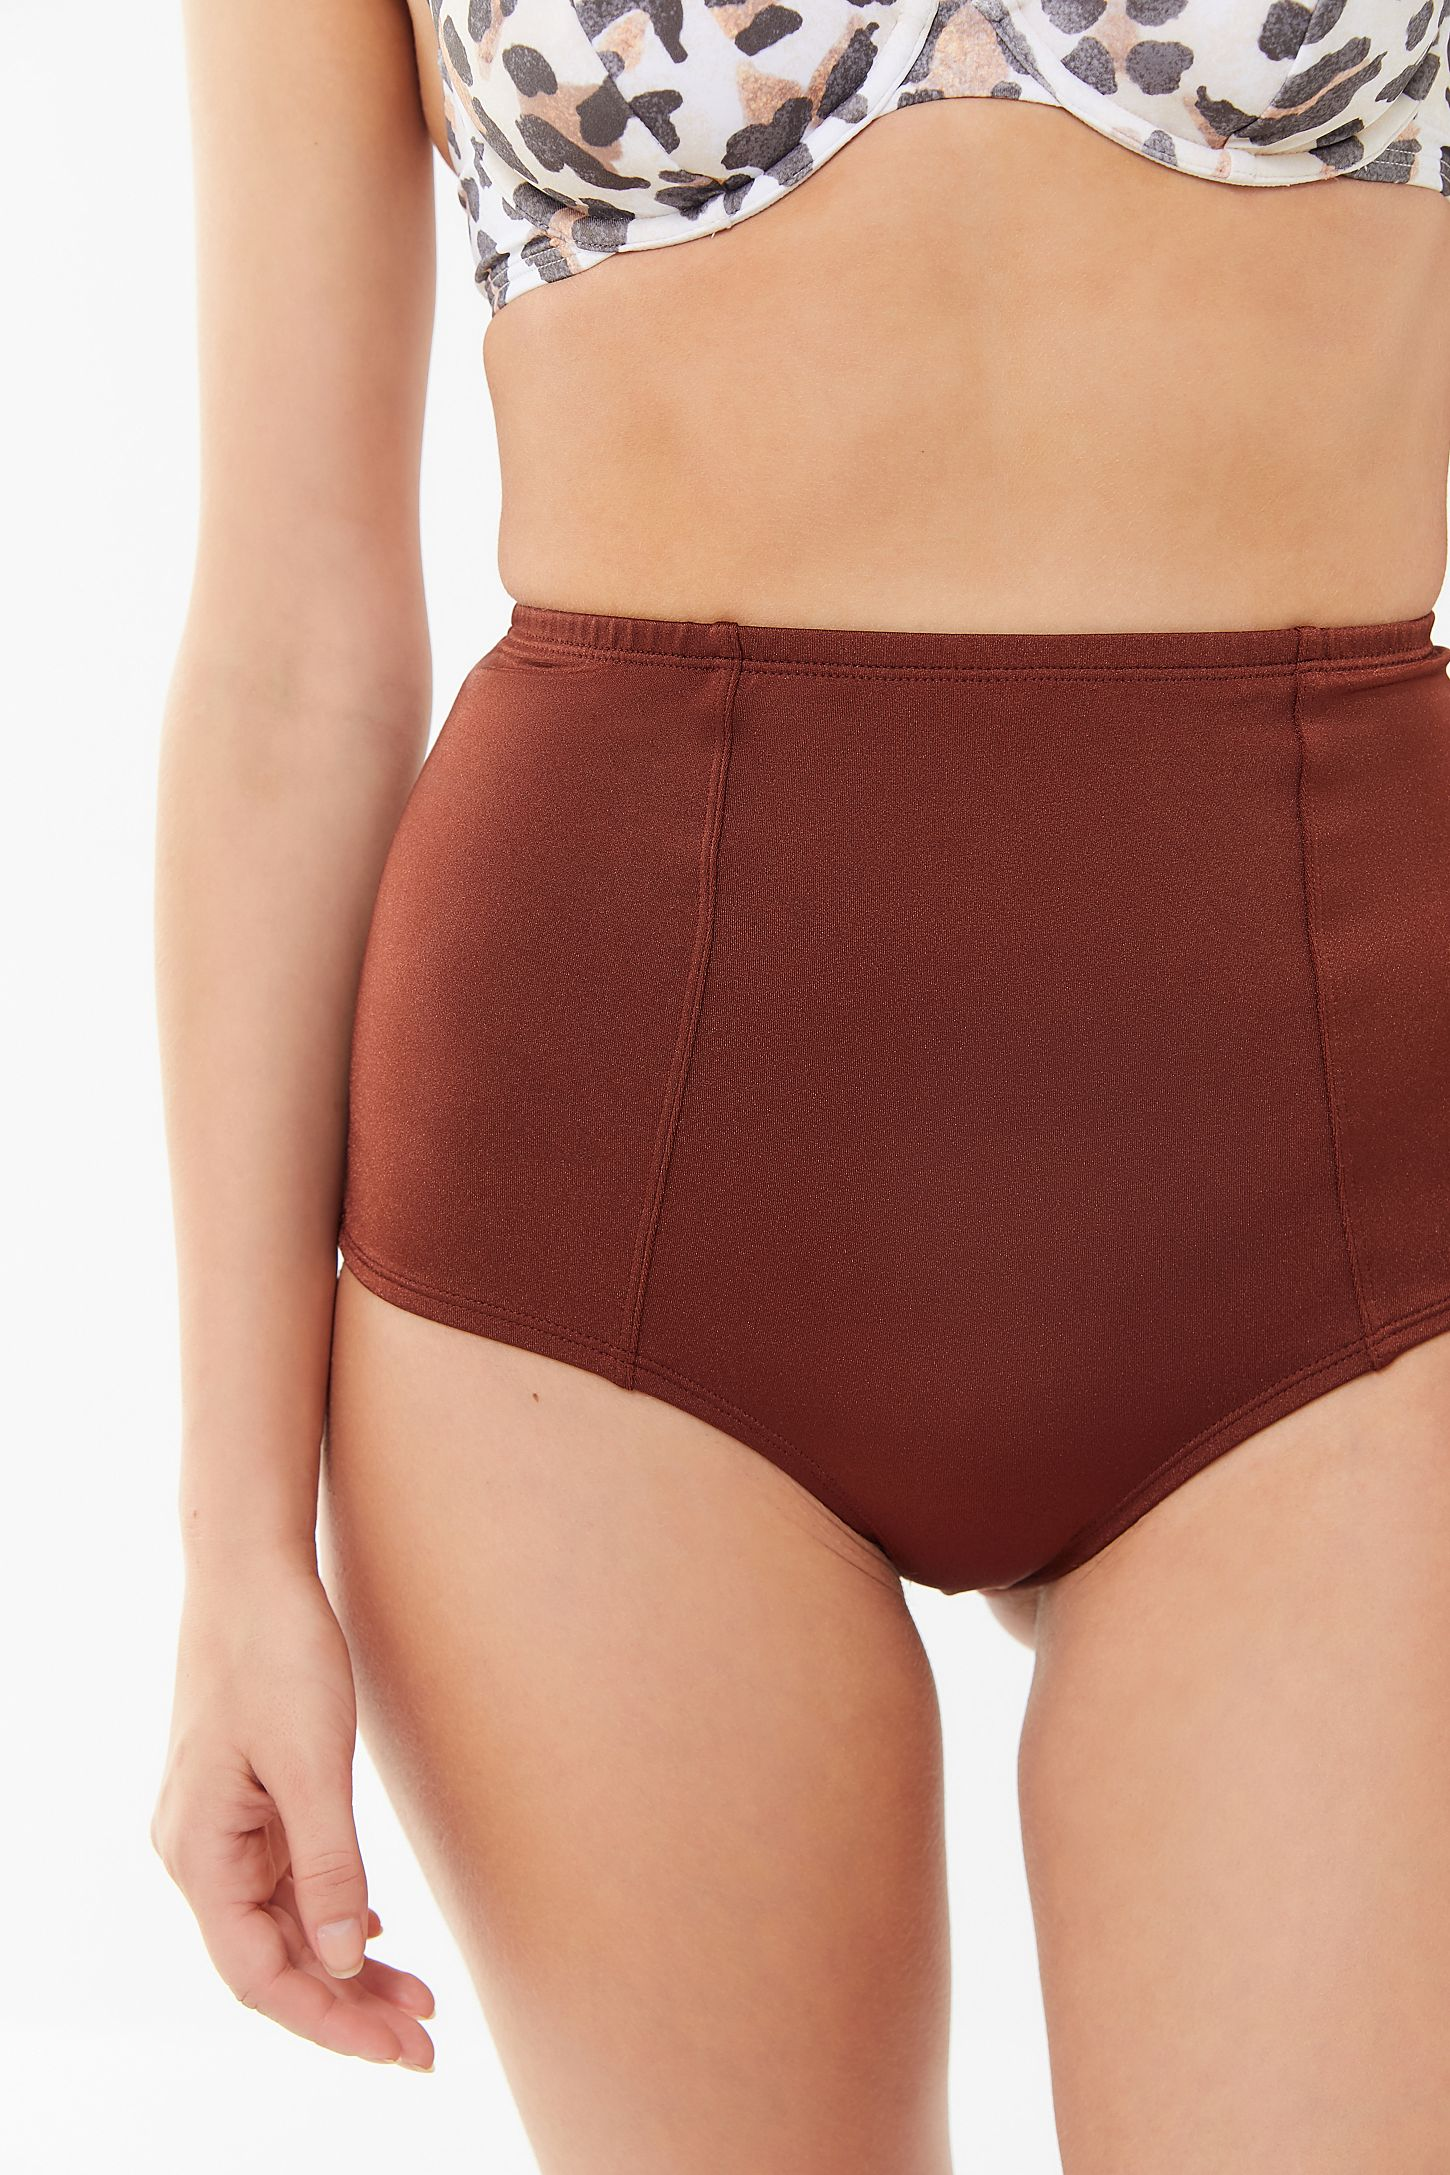 9adbc218b2abf Slide View: 4: Out From Under Shimmer Strappy Back High-Waisted Bikini  Bottom